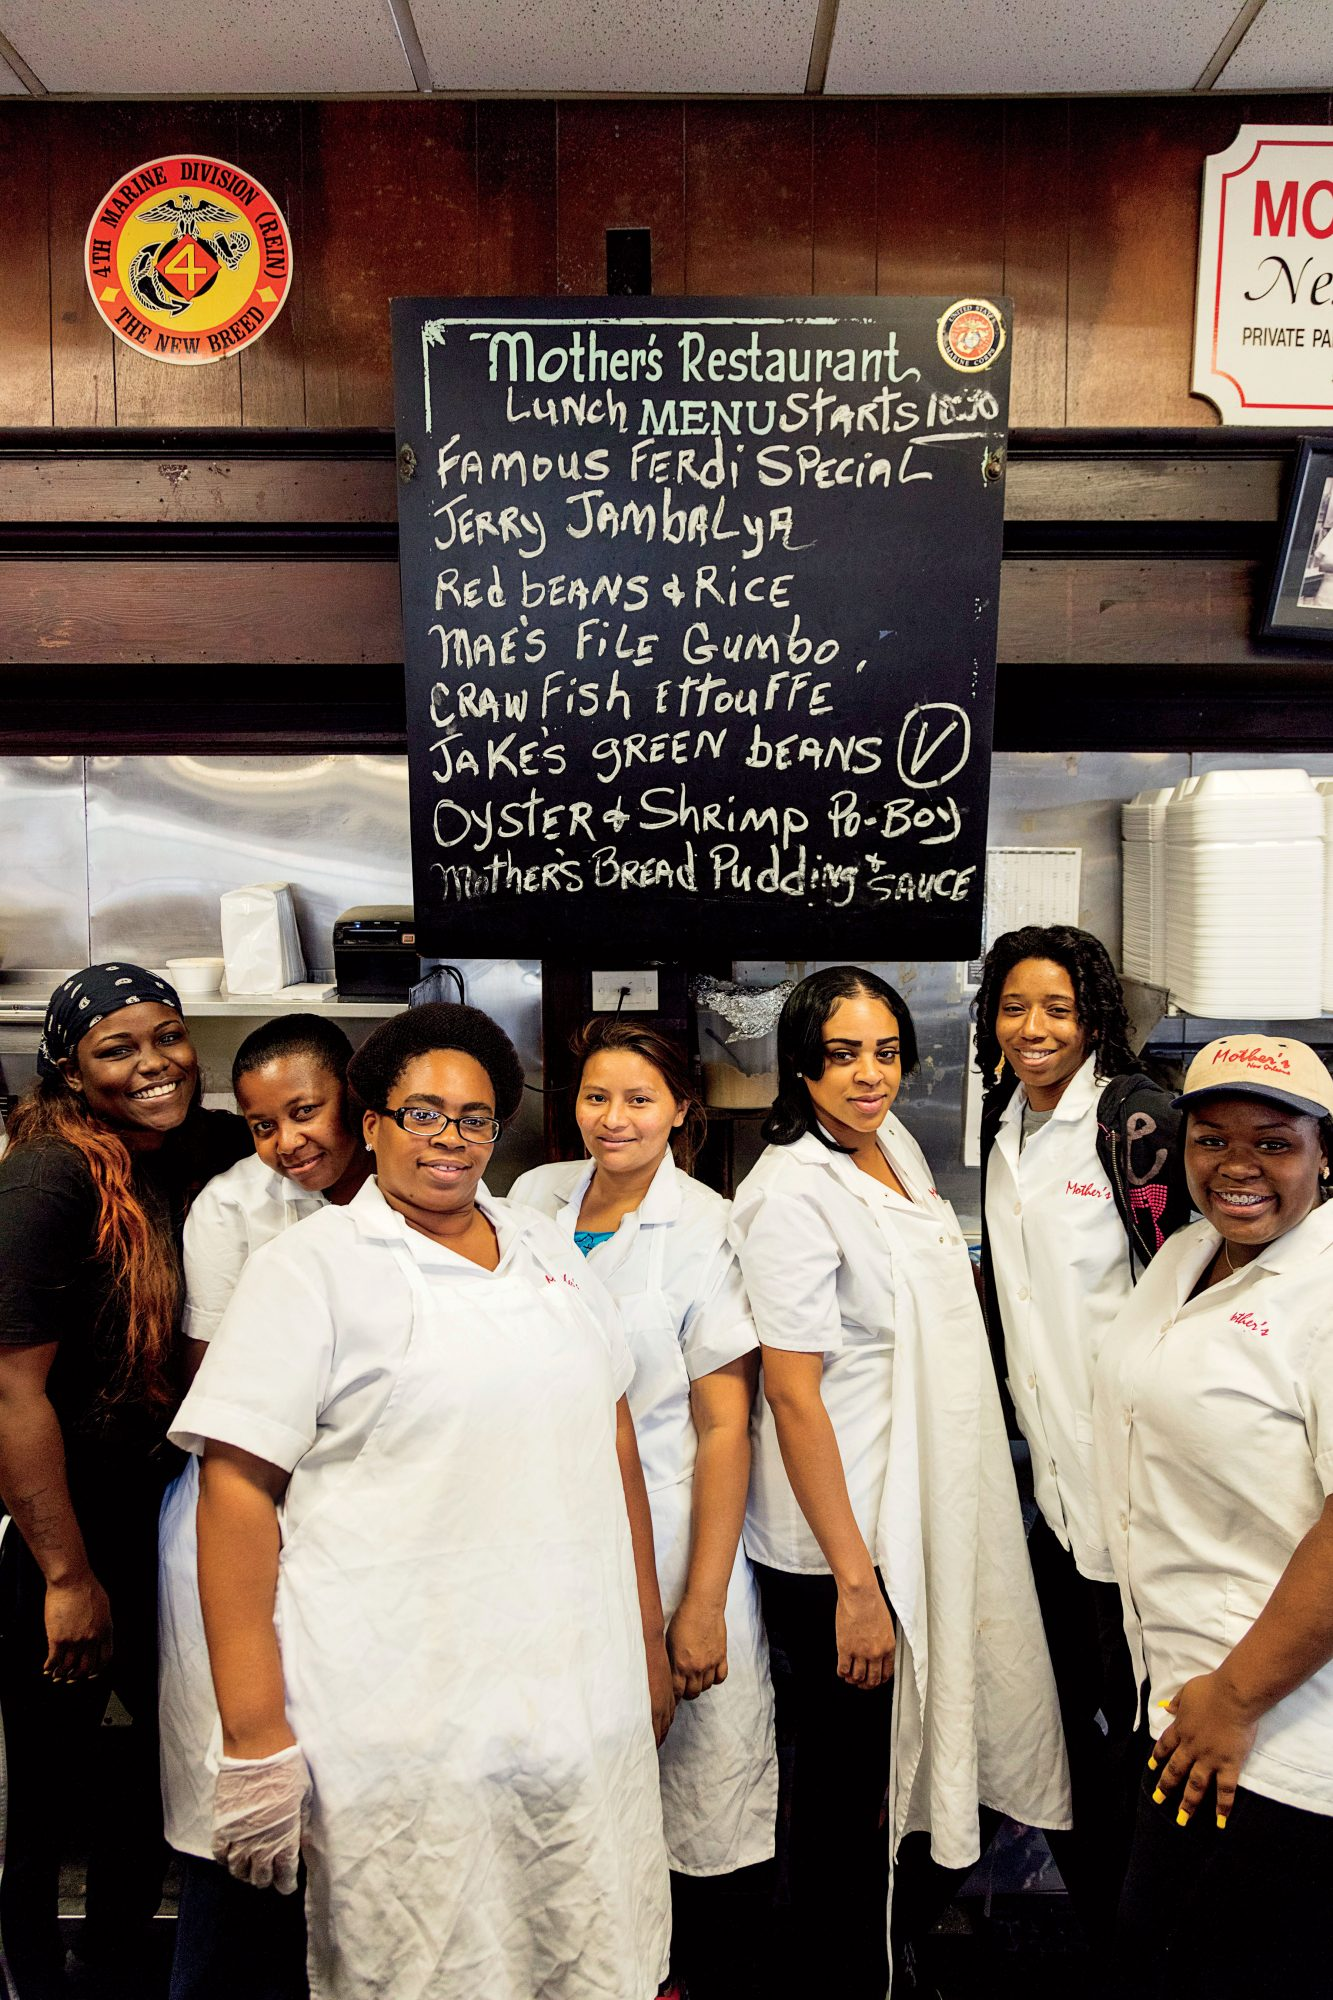 Staff at Mother's Restaurant